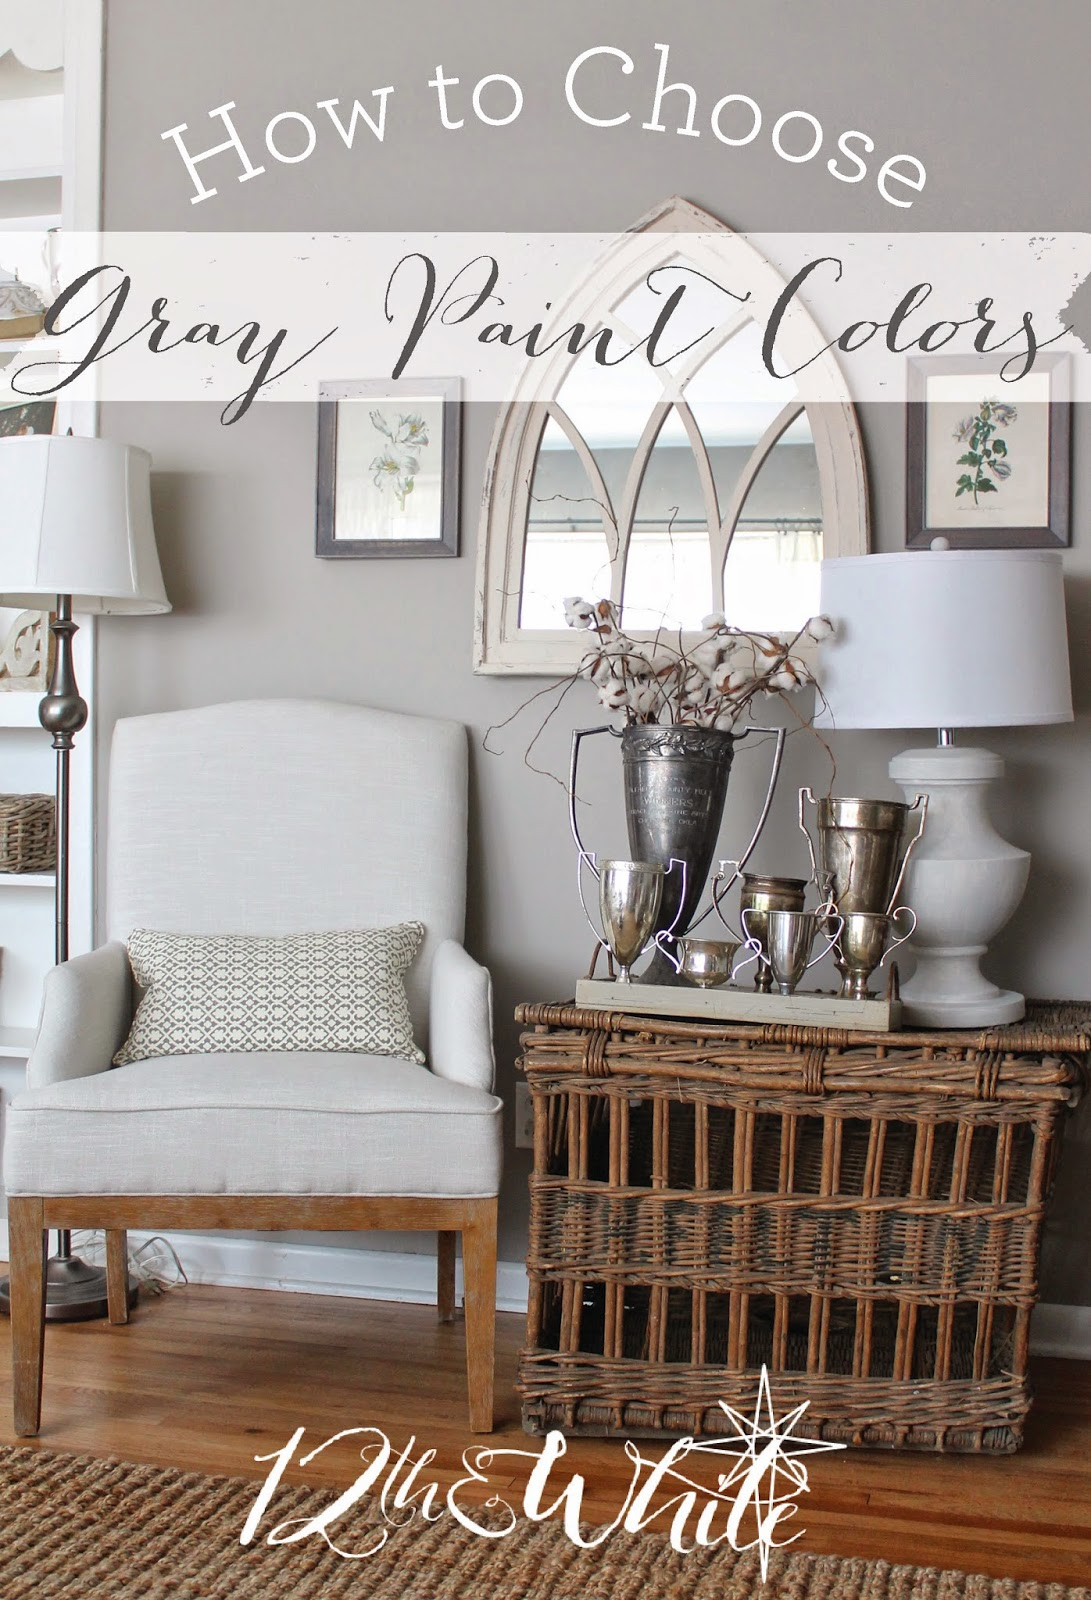 Different Shades Of Gray 12th and white: how to choose gray paint colors